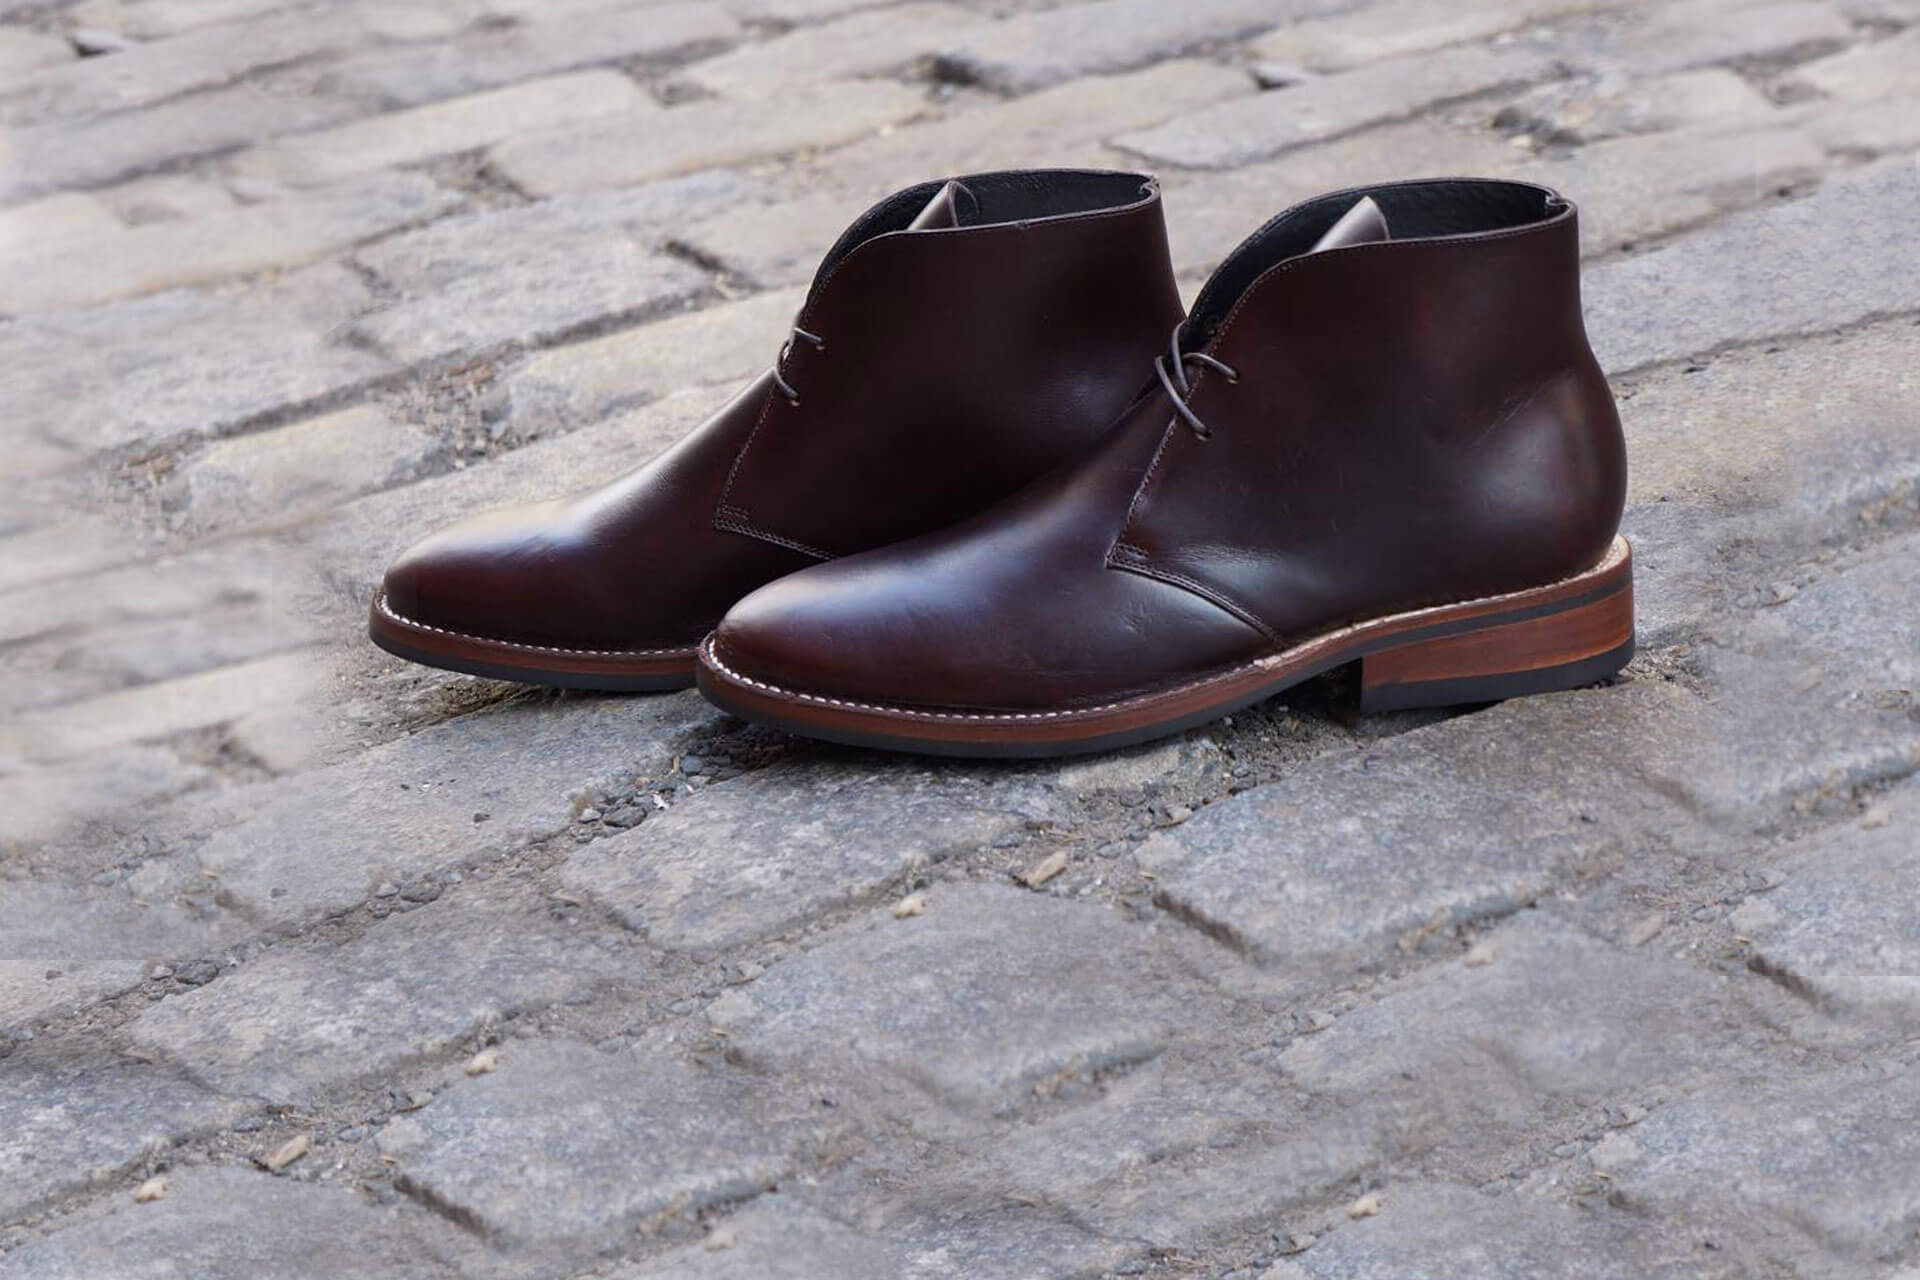 fcc20f80cc3 17 of the Best Men s Chukka Boots Available Online